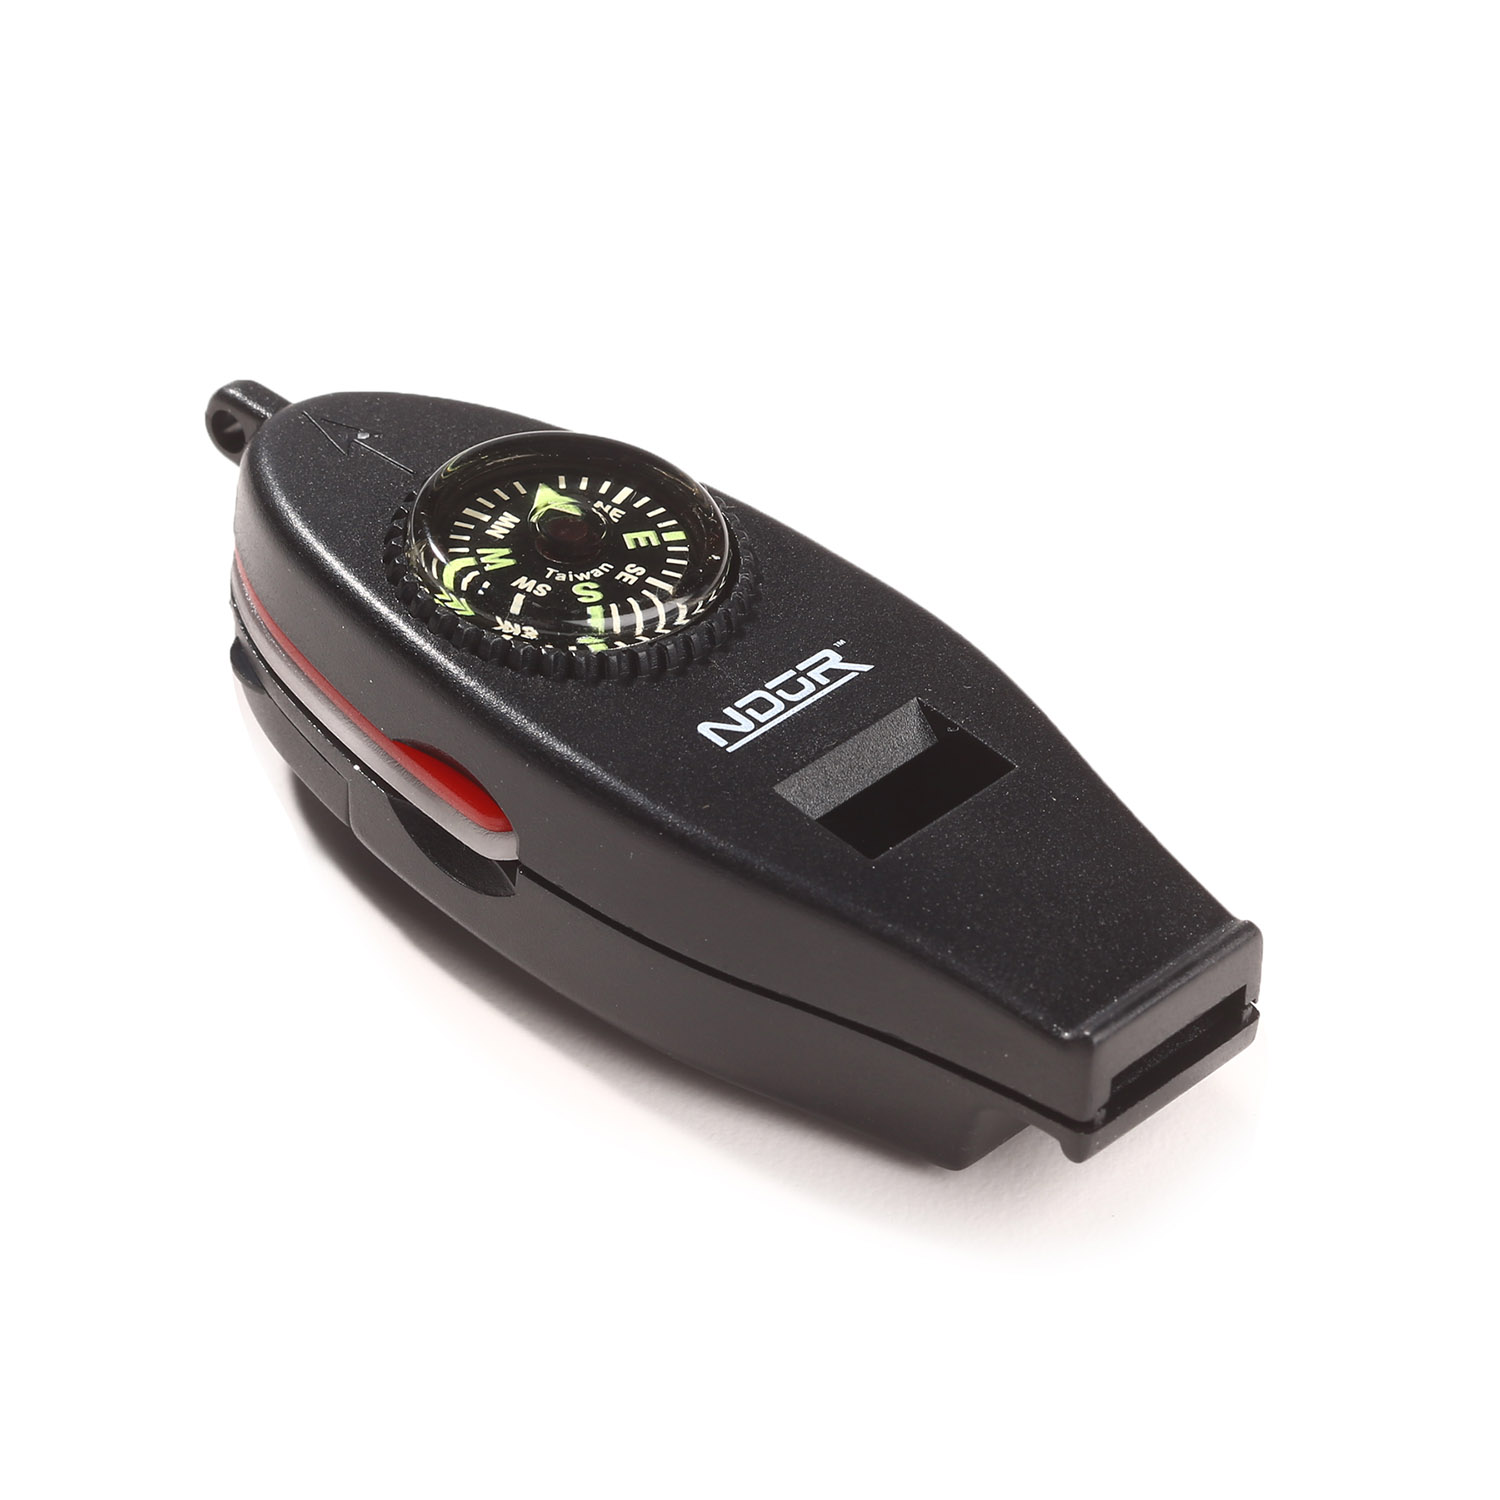 NDUR 6-in-1 Survival Whistle and Compass